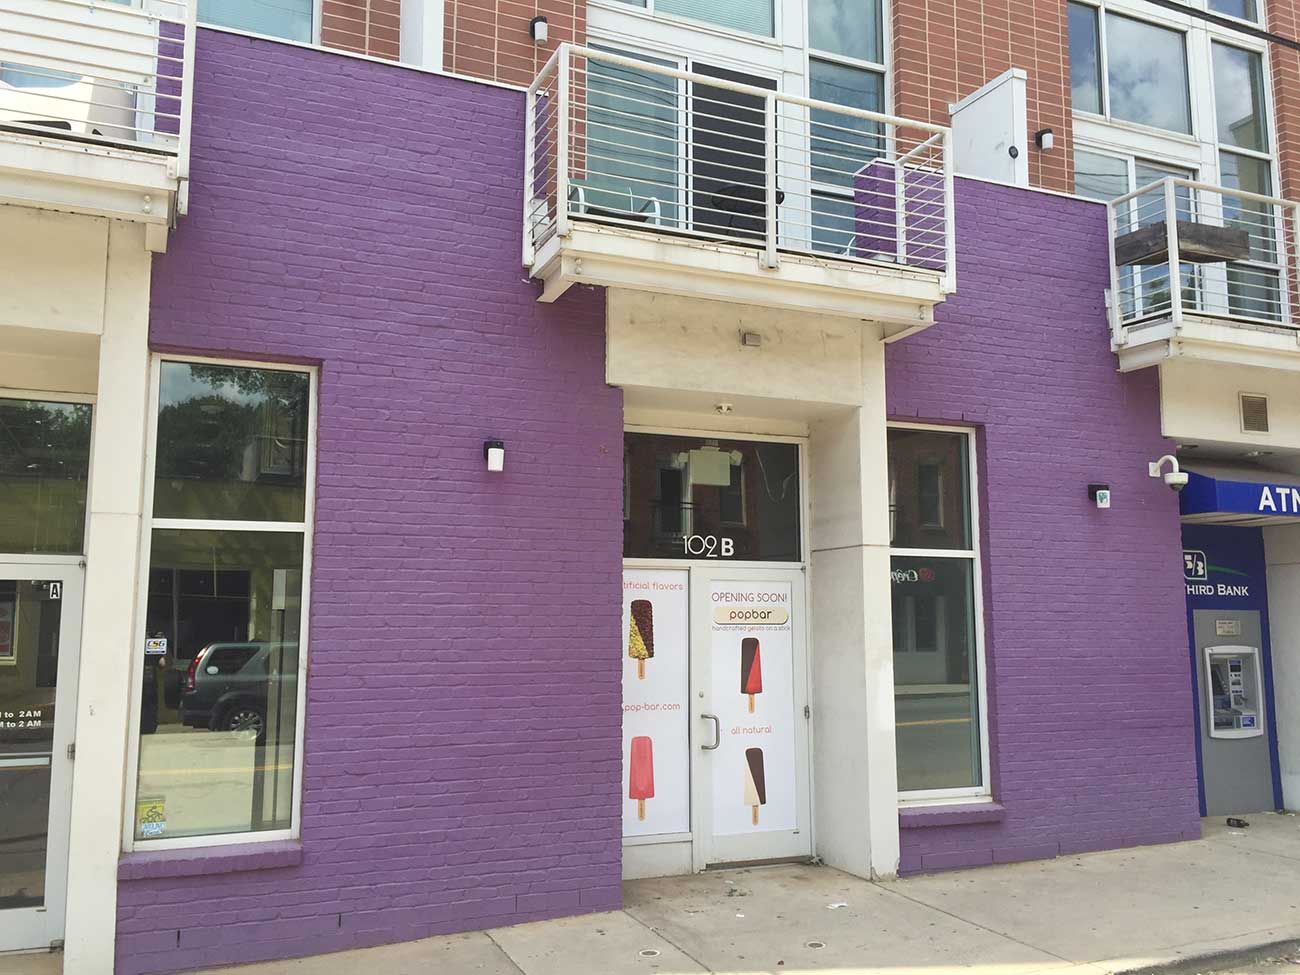 Popbar's first N.C. location will be on North Davidson Street